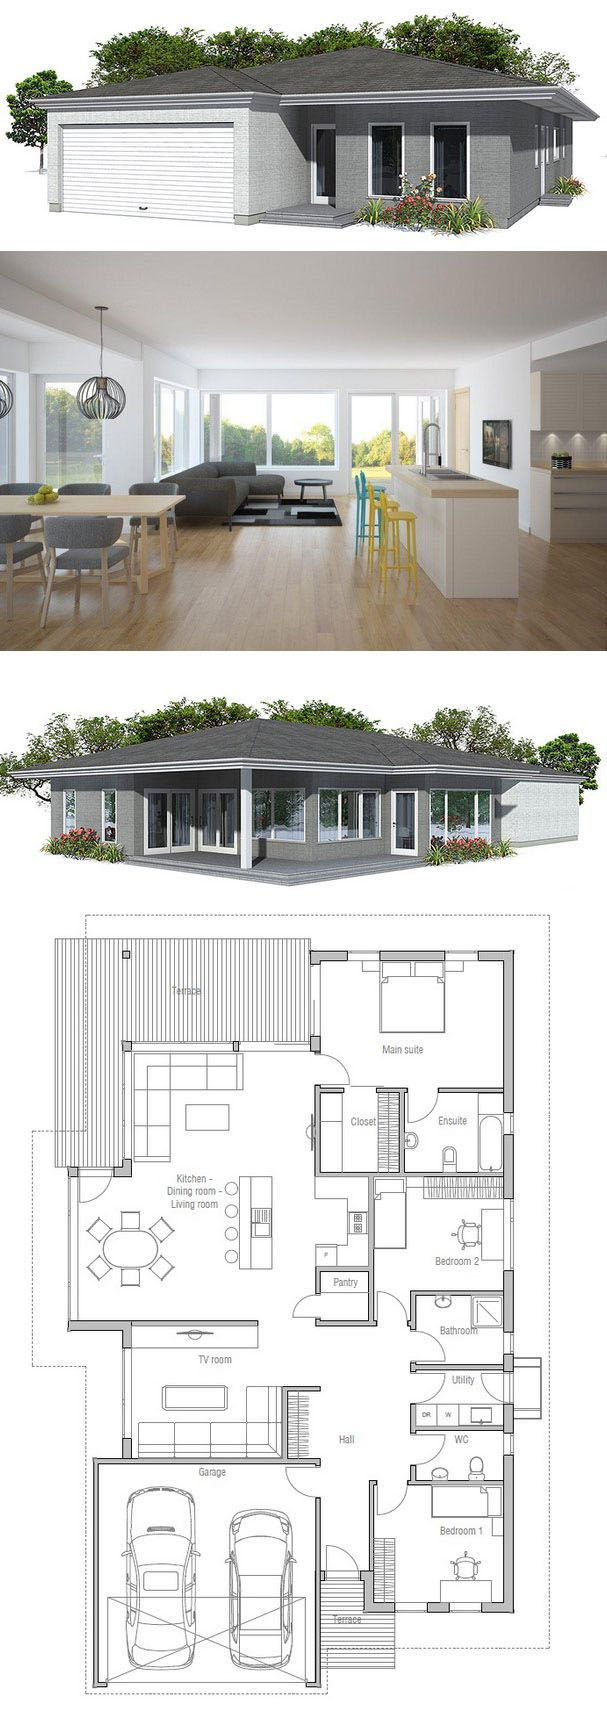 Modern House Plan with covered terrace Garage